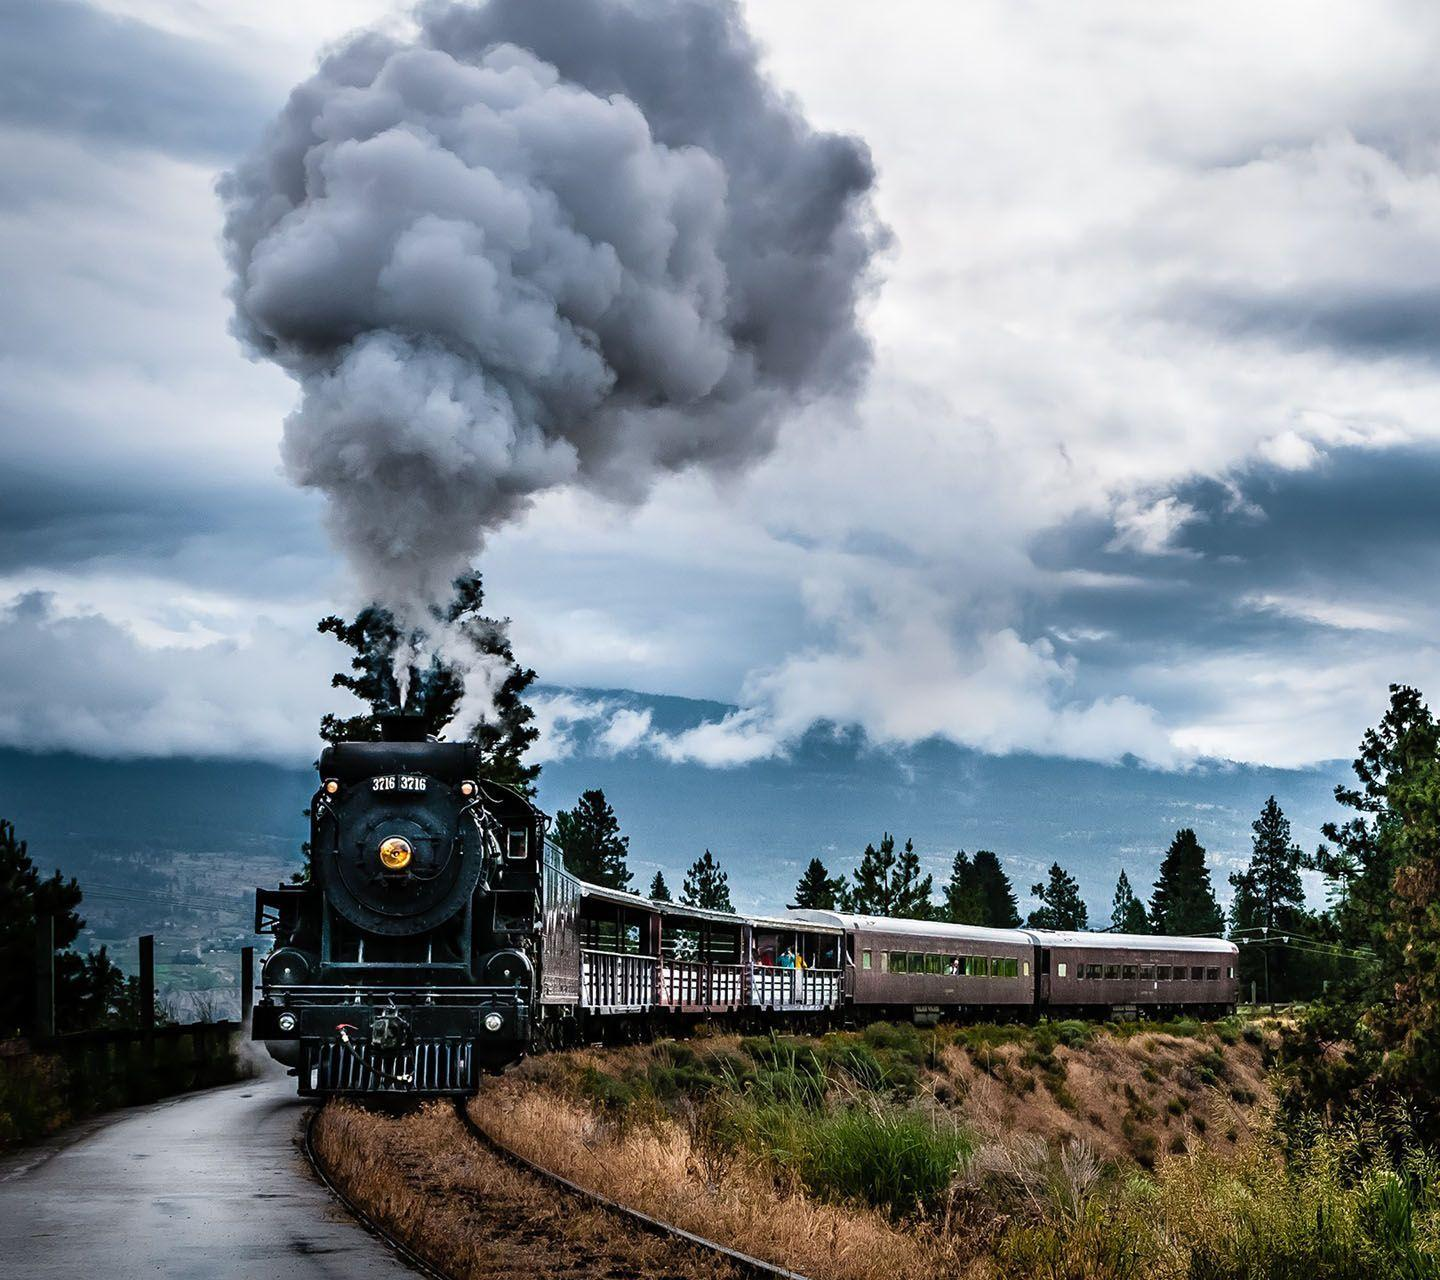 Wallpapers Of Trains: Steam Engine Wallpapers